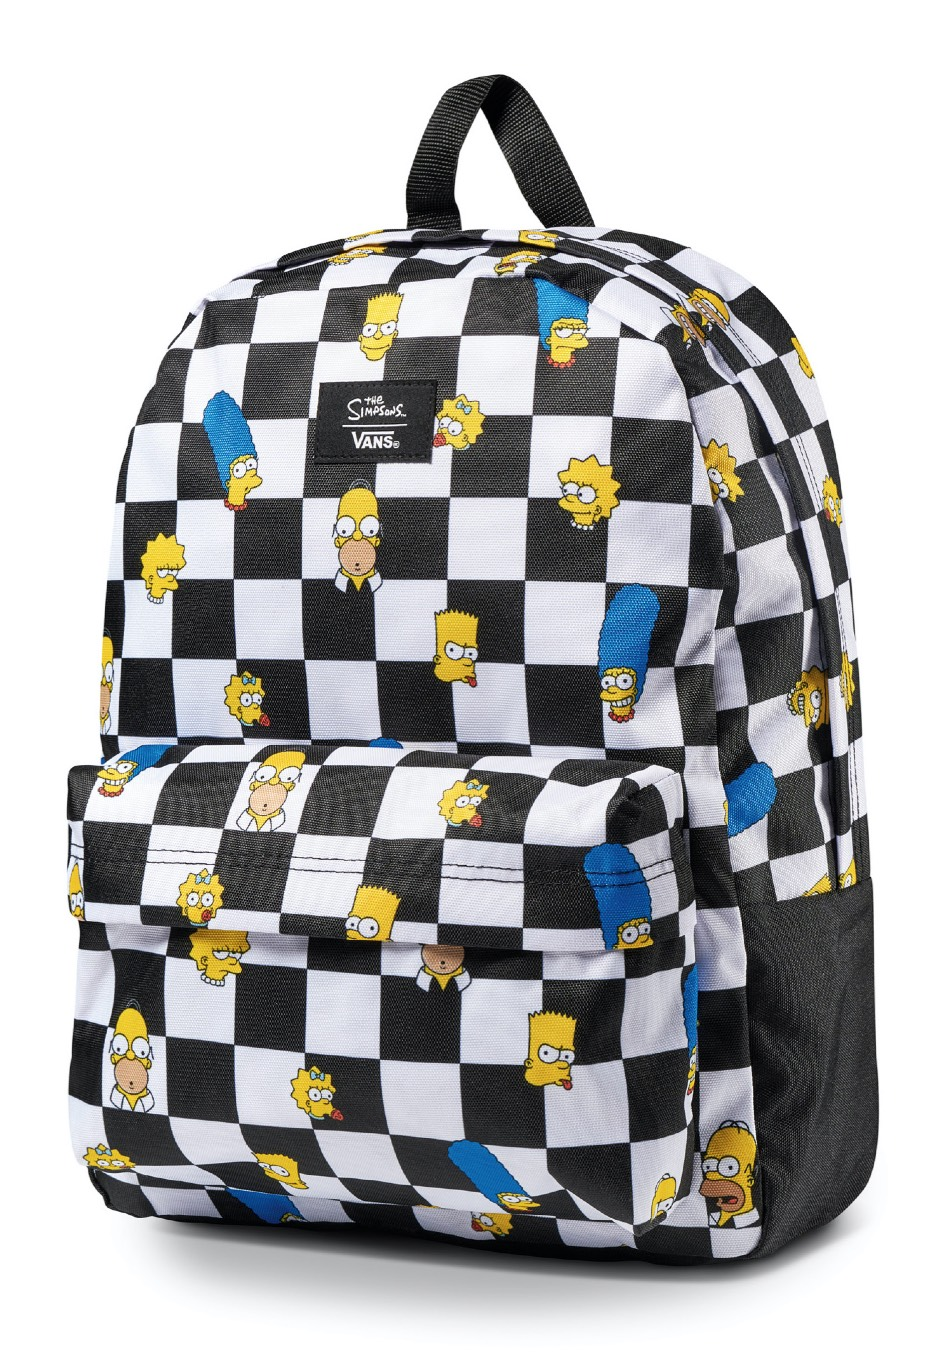 Vans x Simpsons Family Multicolored Sac a dos